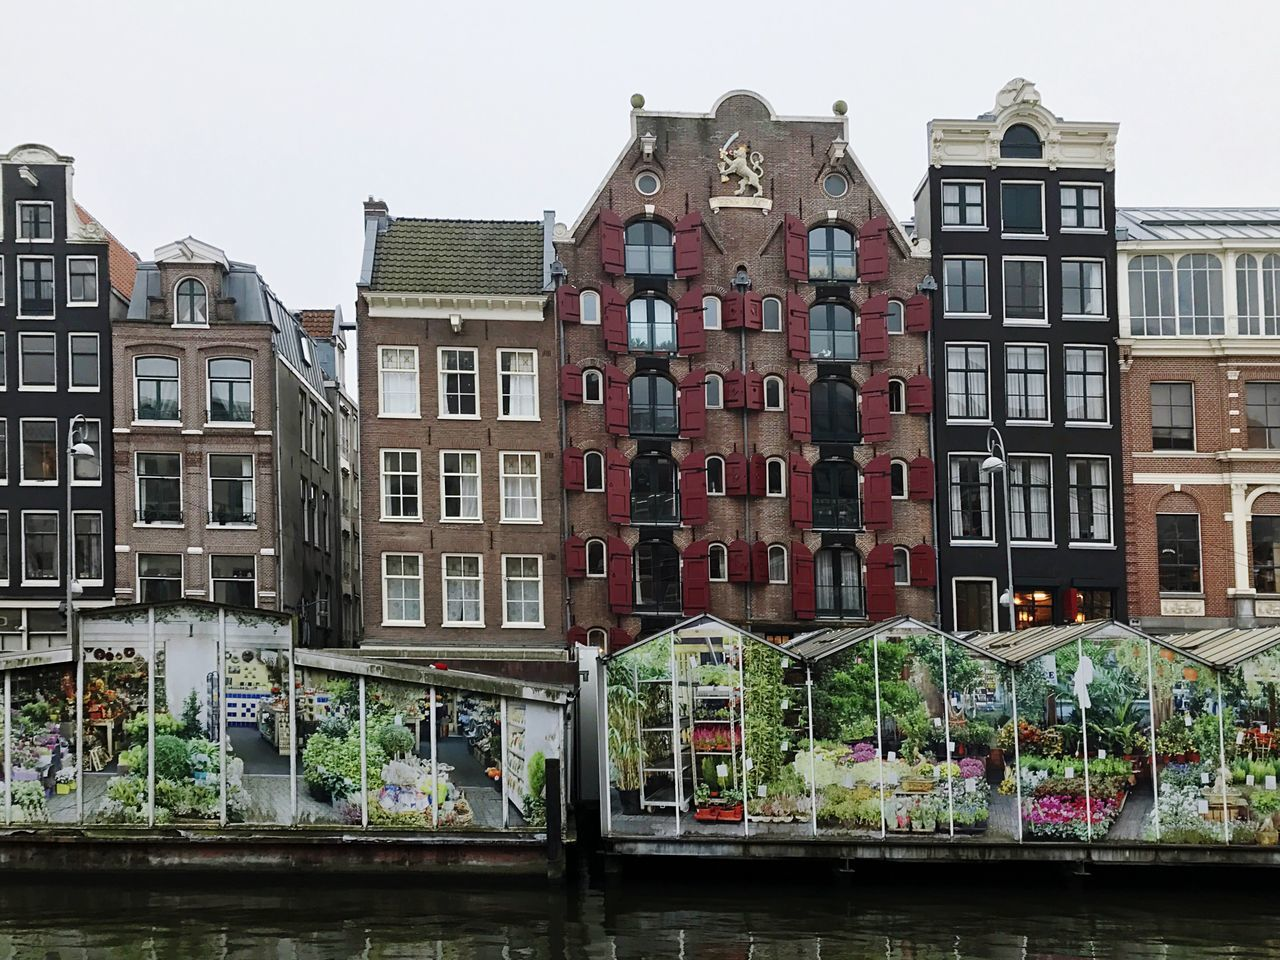 Architecture Window City Outdoors Residential Building Row House Amsterdam Flower Market